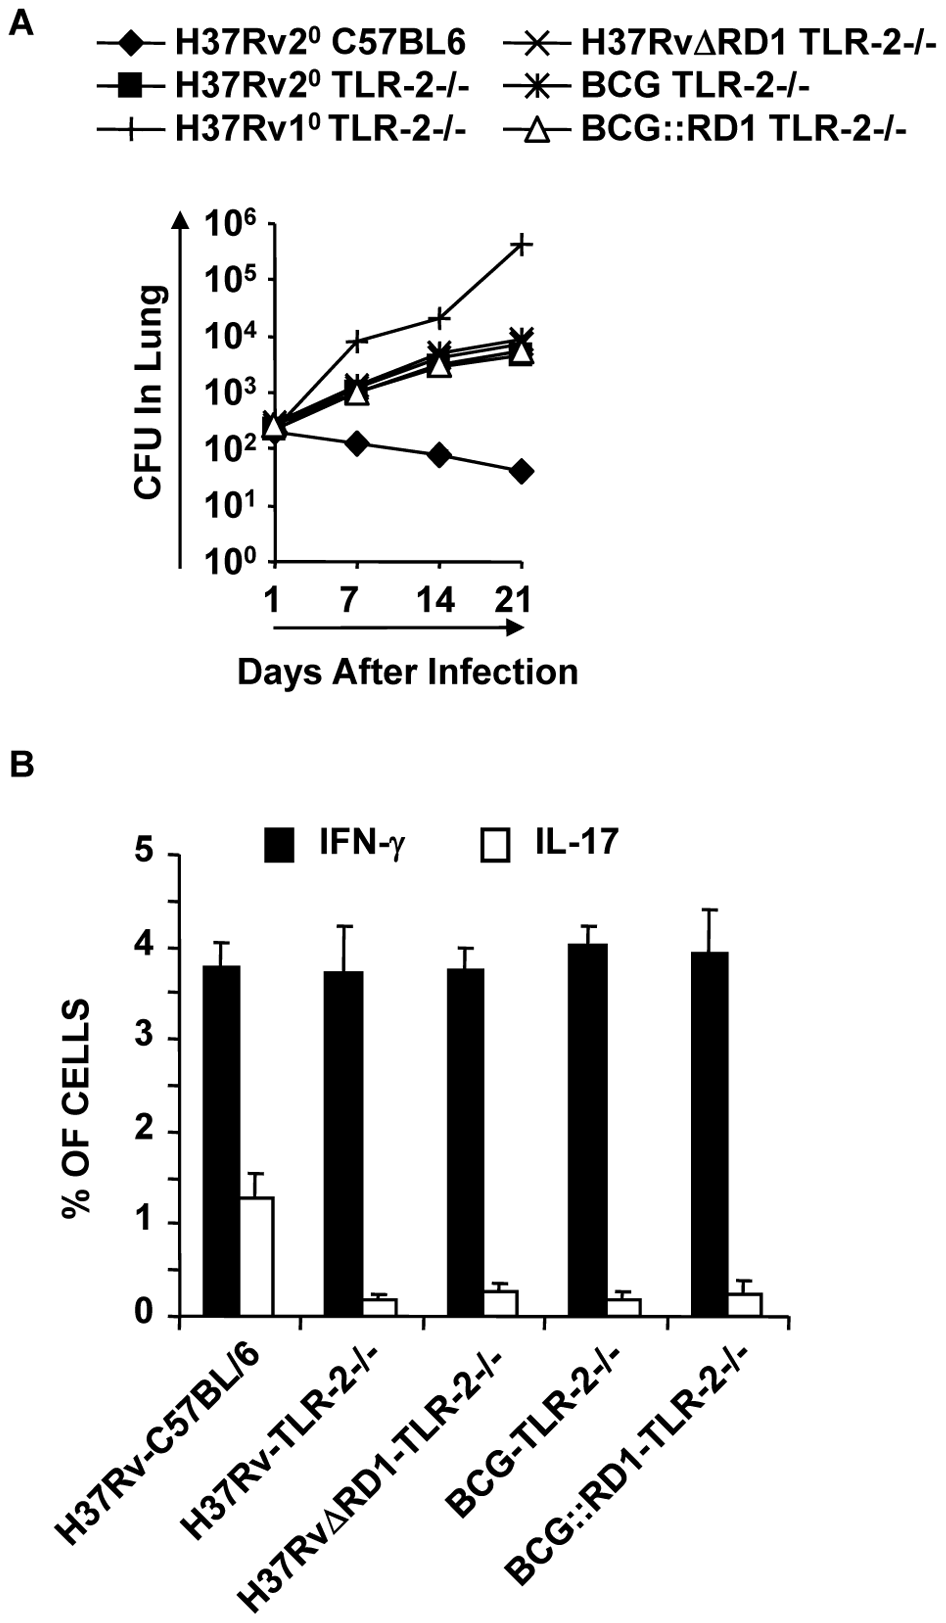 TLR-2-deficient animals induce reduced levels of protective immune responses.